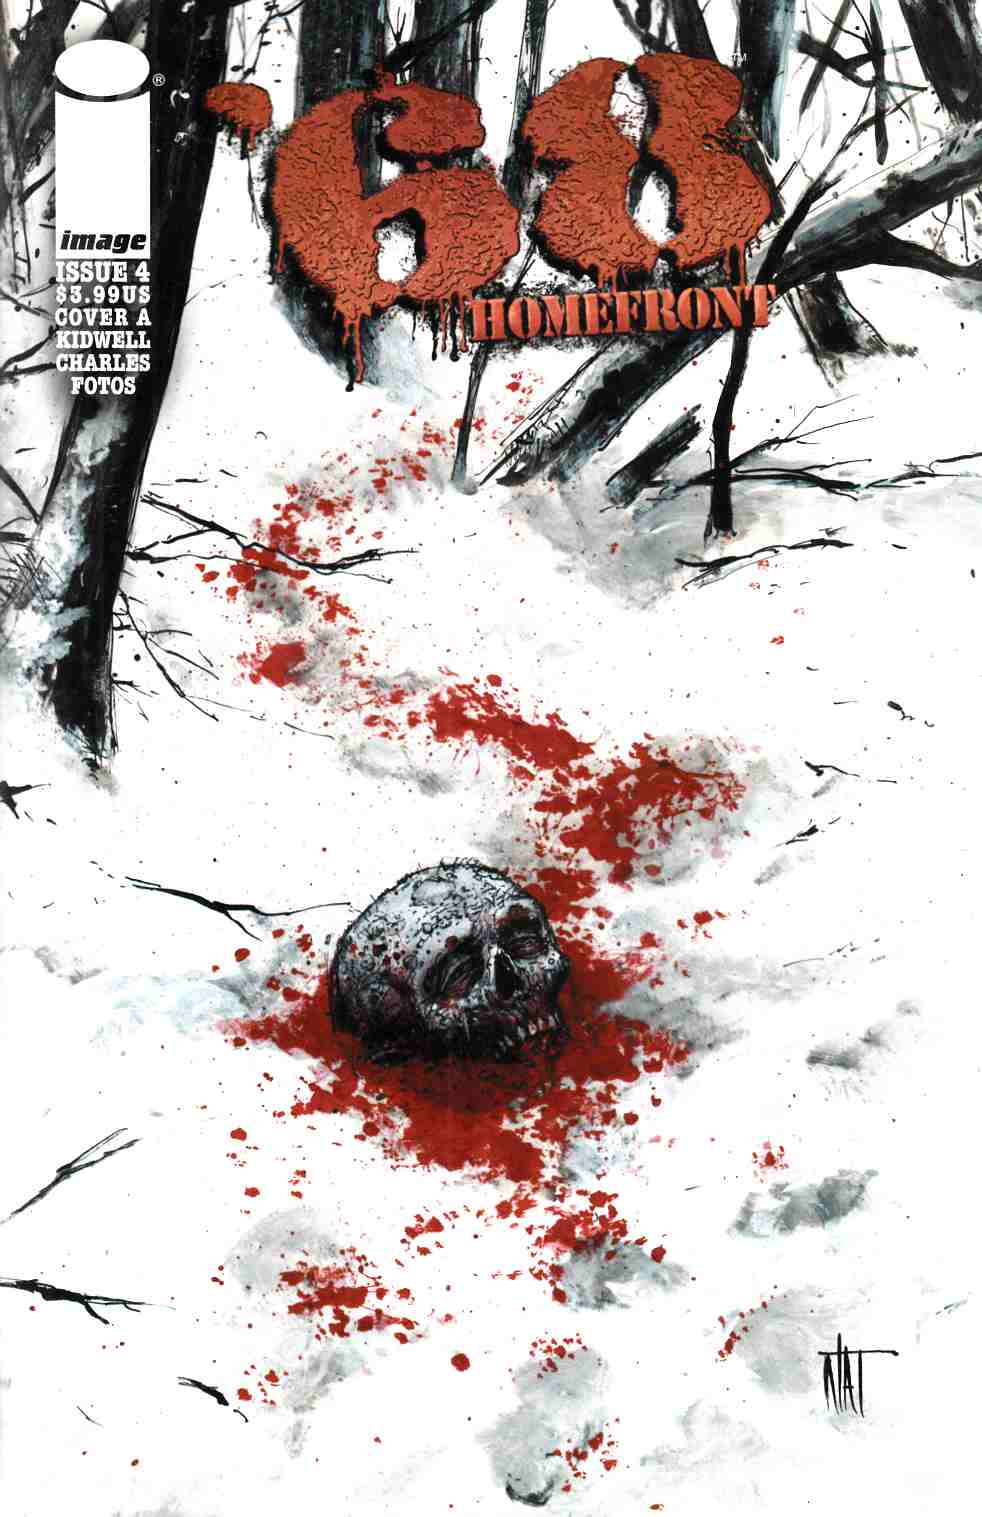 68 Homefront #4 Cover A- Jones [Image Comic] THUMBNAIL